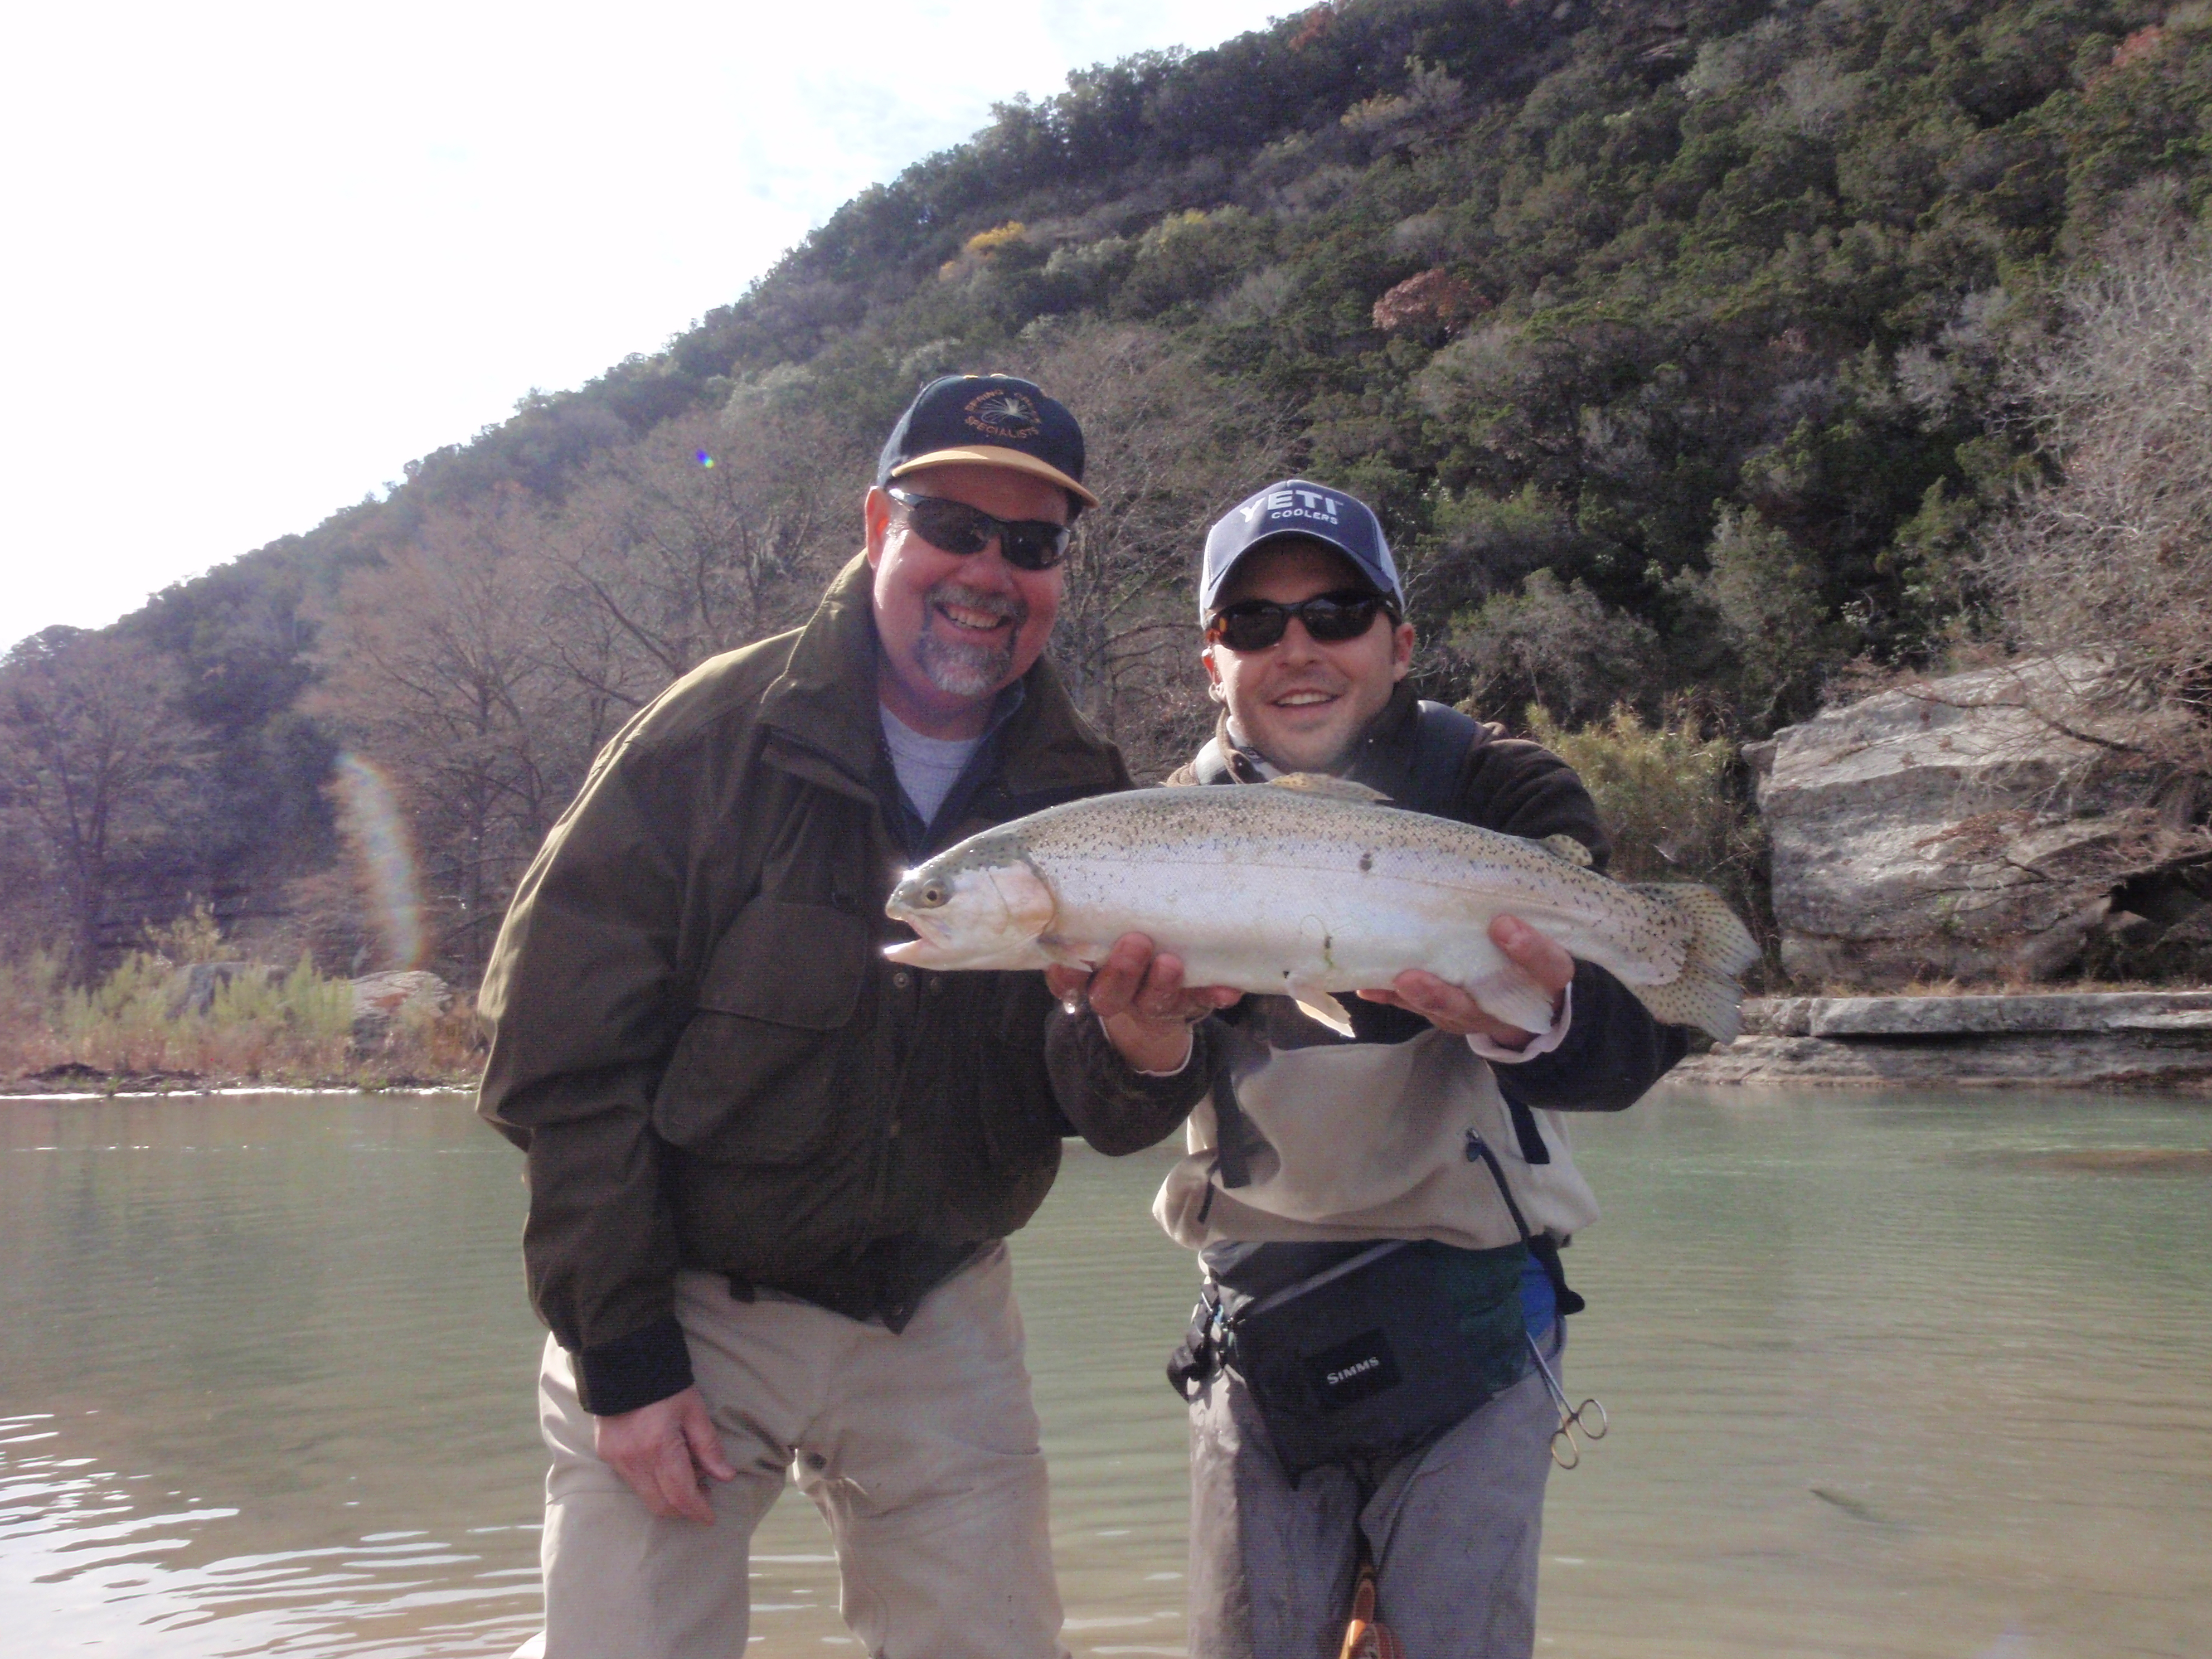 Guadalupe river fly fishing report 12 21 09 for Guadalupe river fly fishing